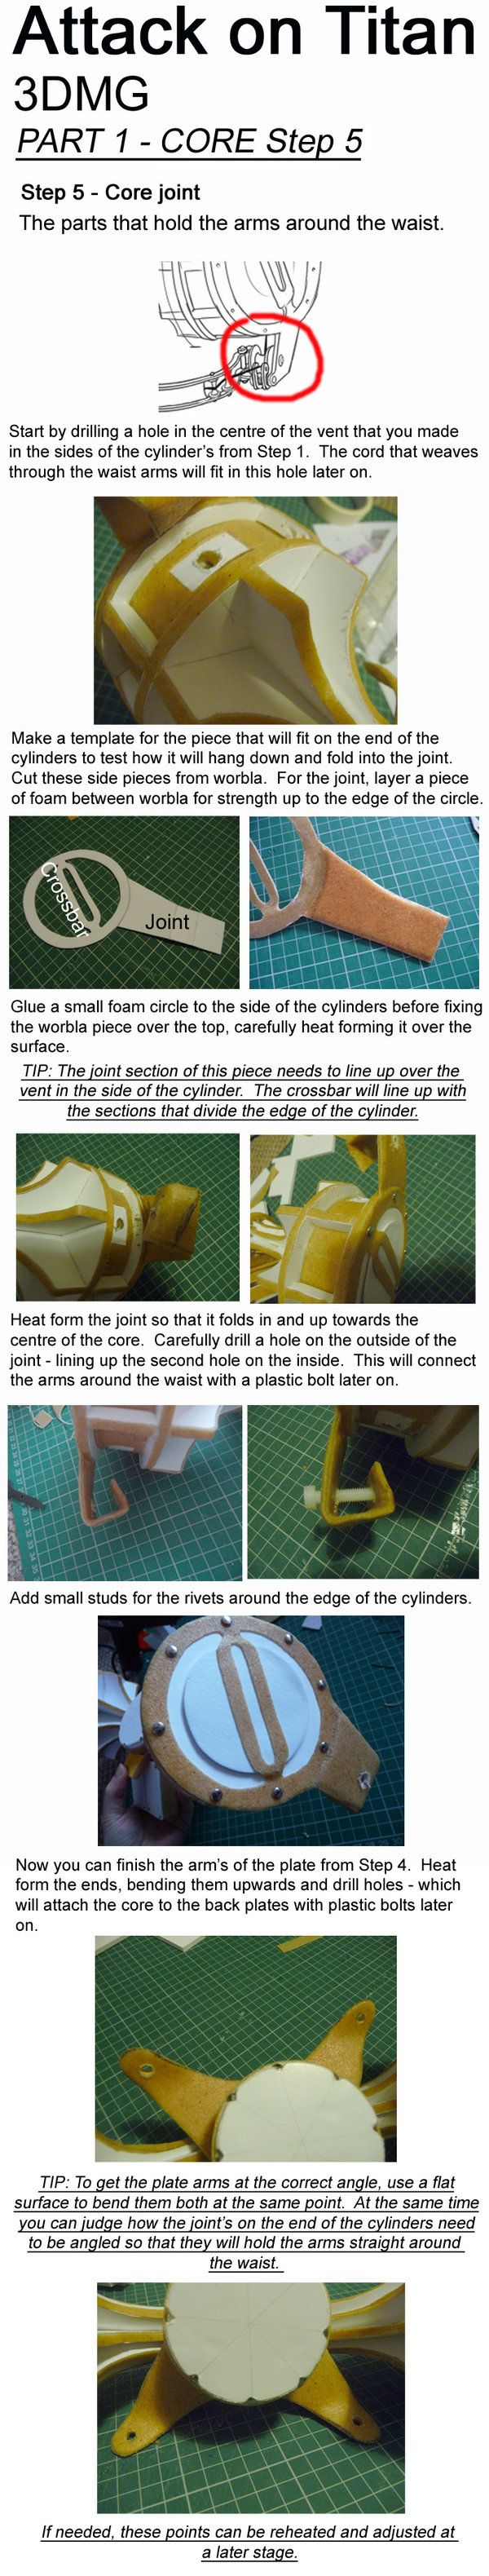 attack on titan 3dmg tutorial core step 5 by